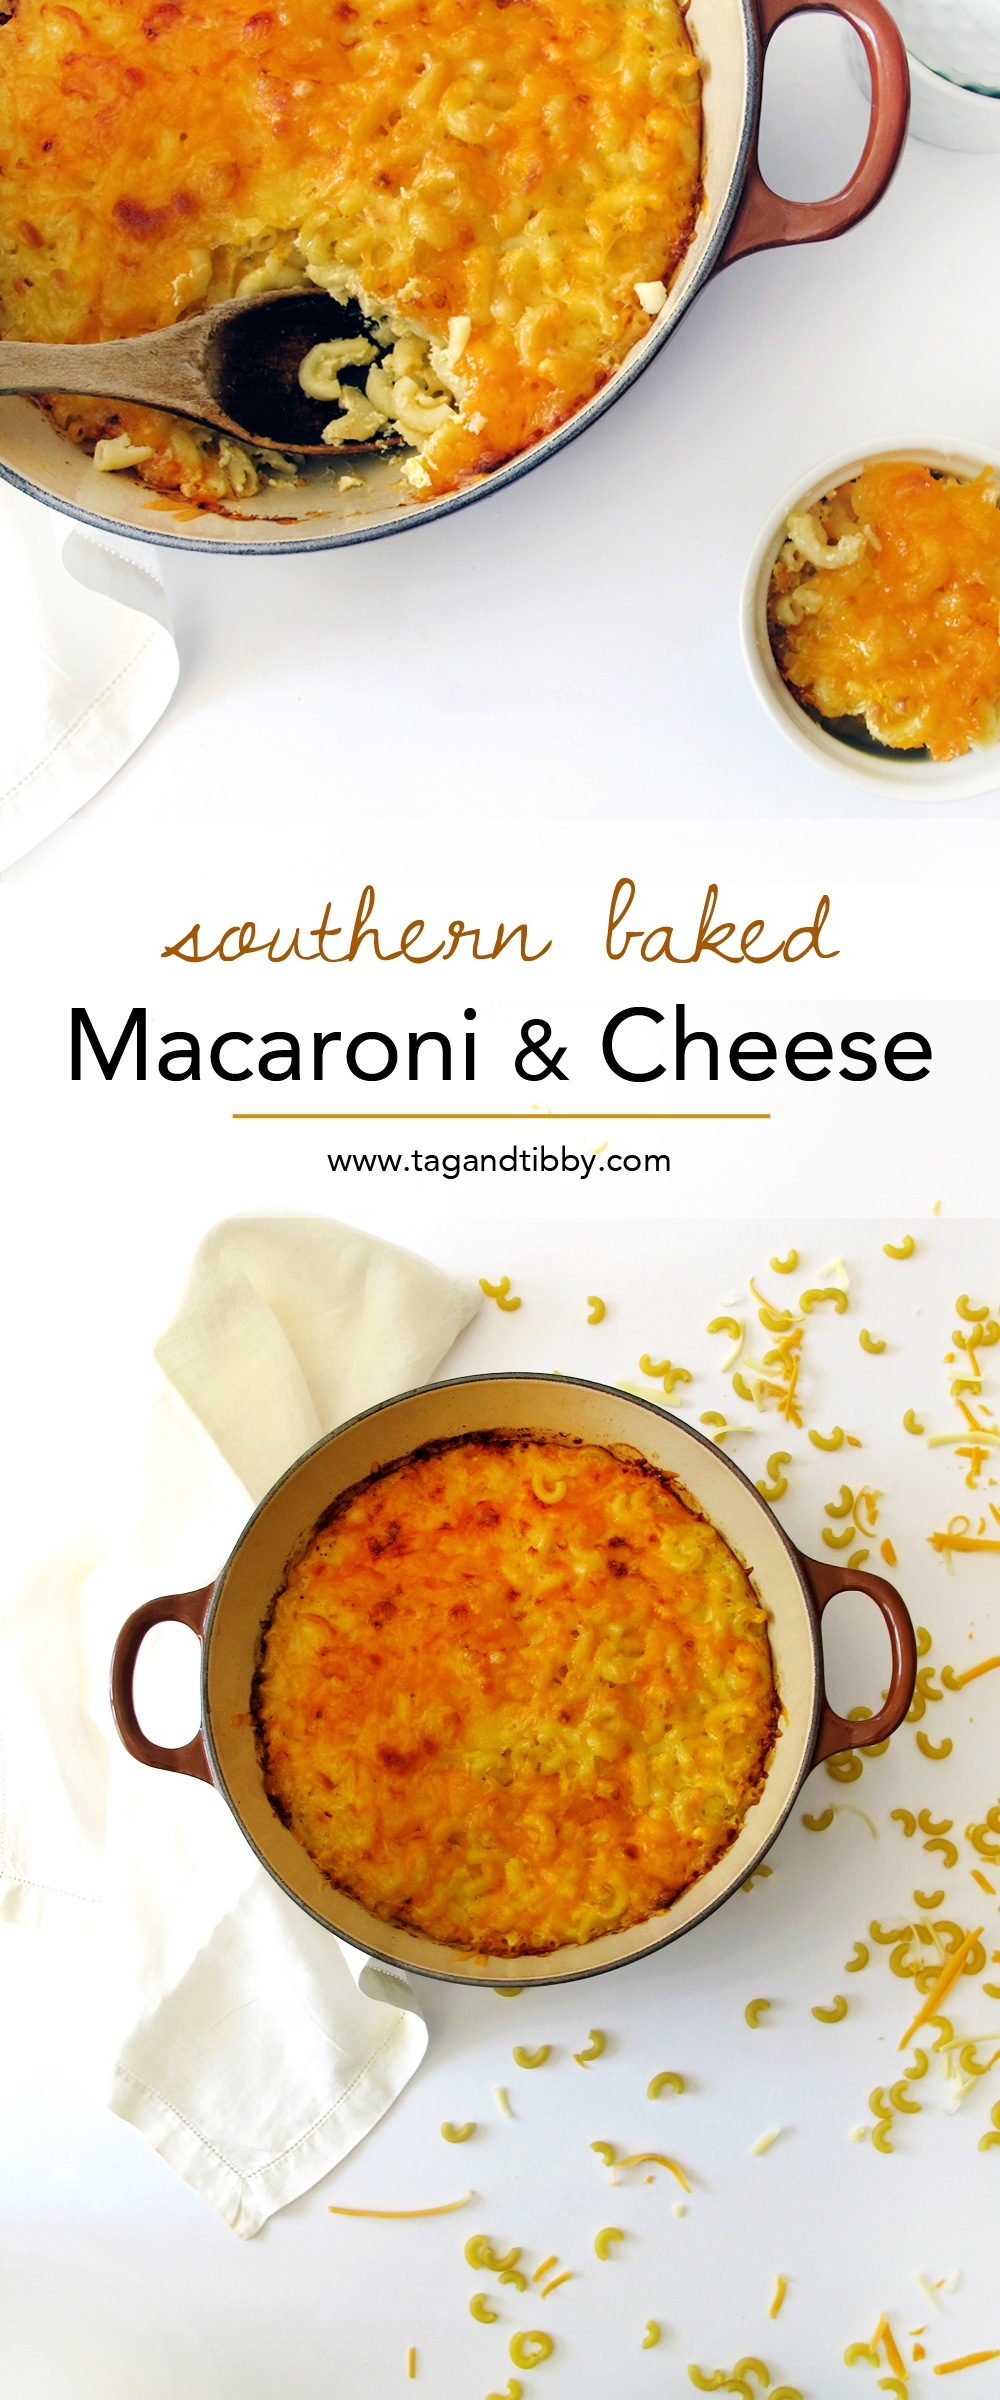 a delicious Southern baked mac & cheese recipe